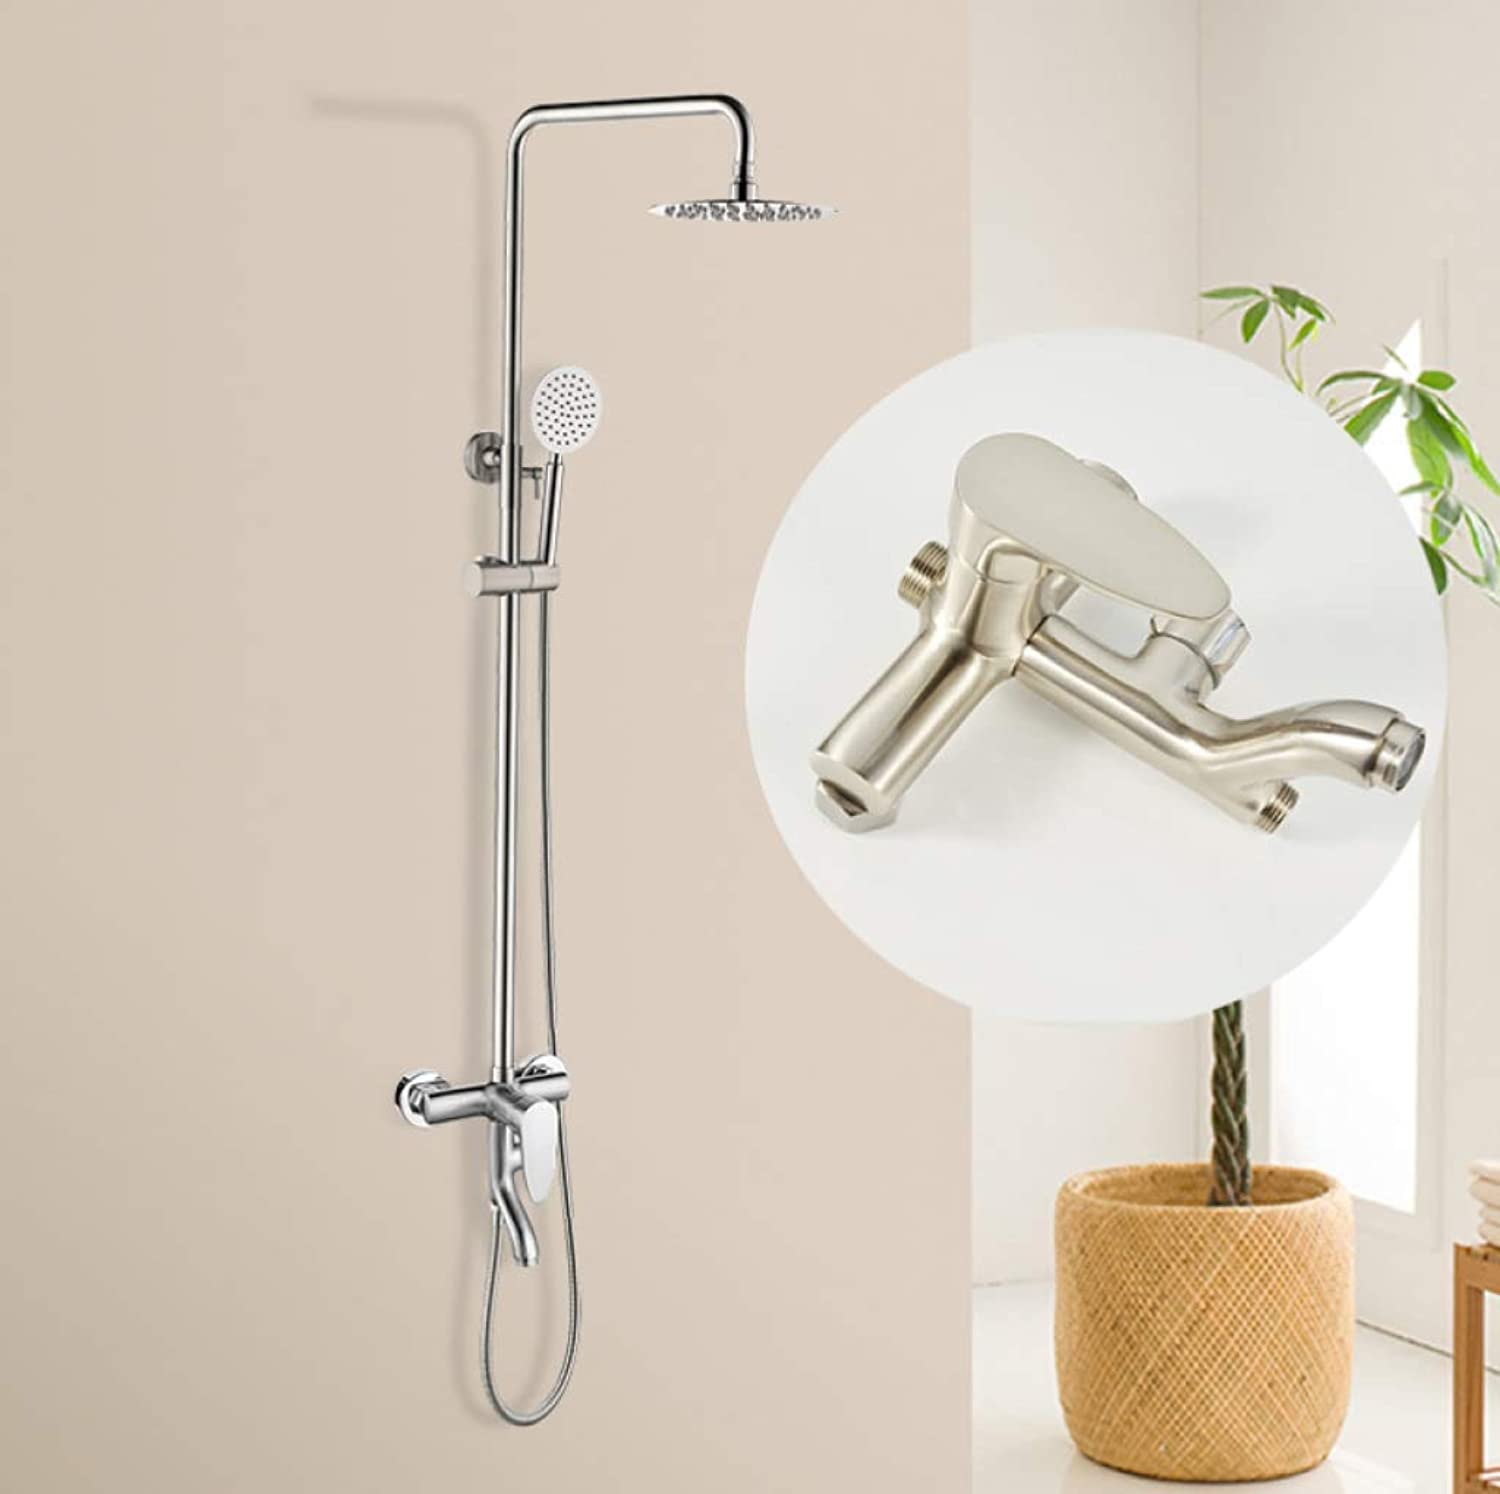 FOTEE Shower Faucets Sets Complete, Stainless Steel Pressurized Shower Head, Shower Combo Set, Bring The Ultimate Shower Experience